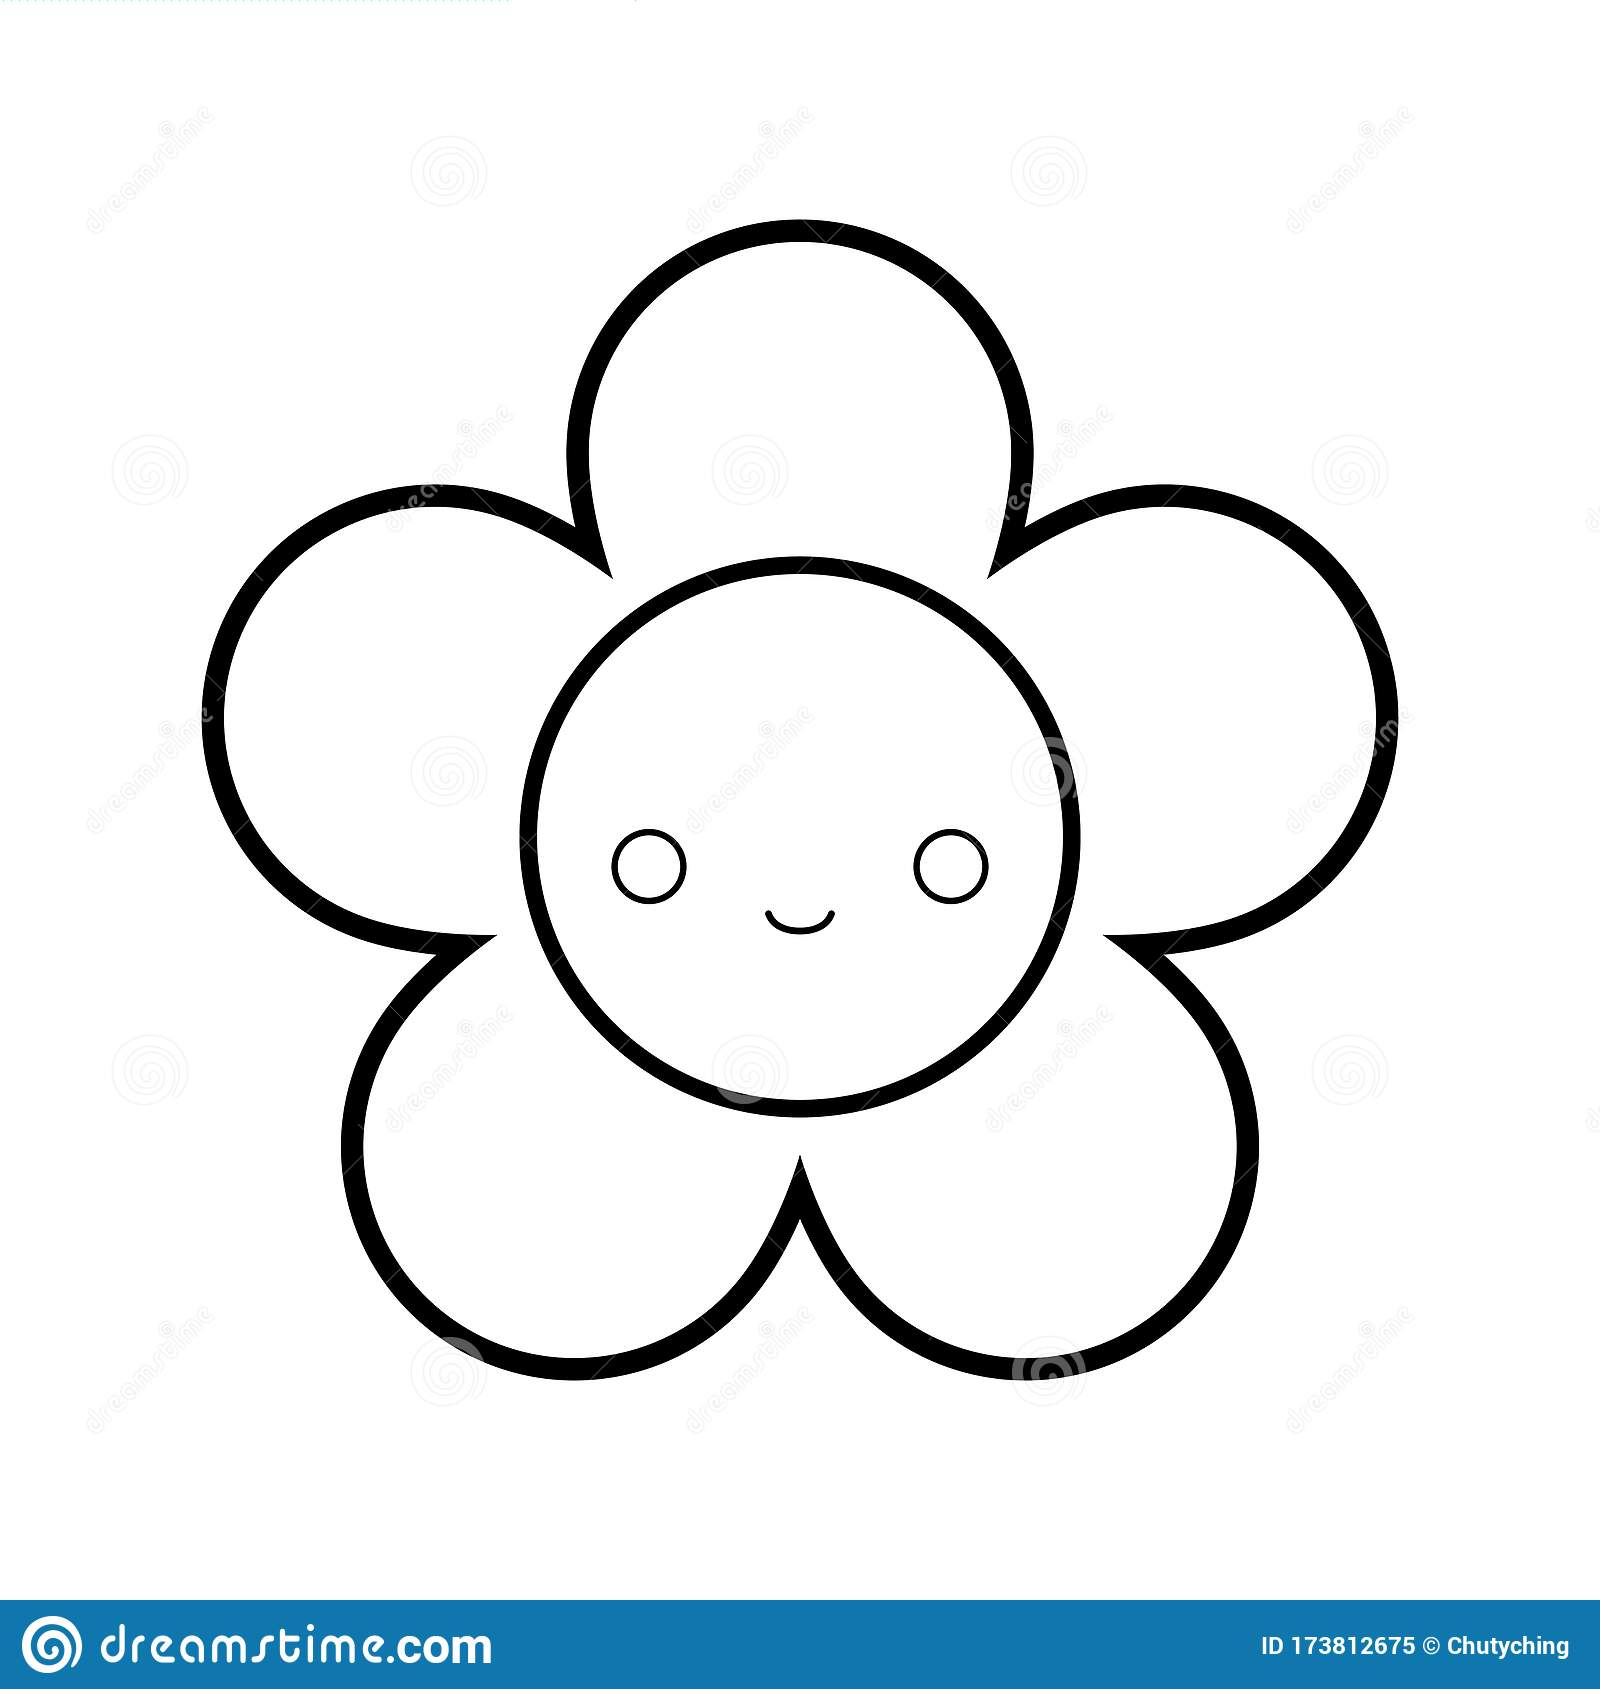 Cute Flower Outline Drawing For Children S Coloring Book Stock Vector Illustration Of Coloring Cartoon 173812675